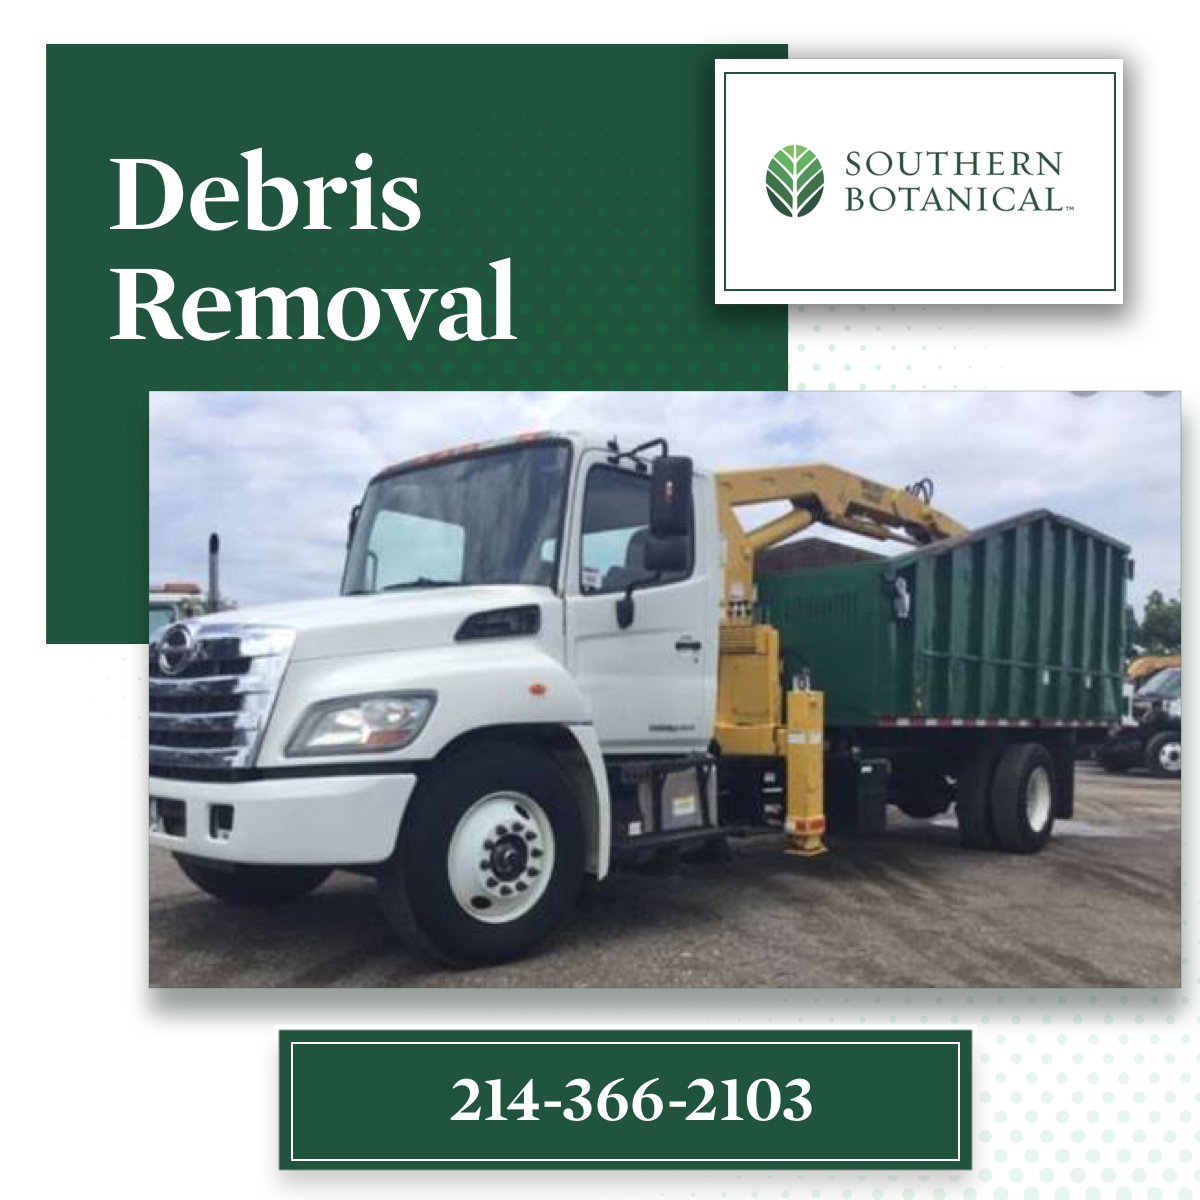 Professional Storm Cleanup Services | Debris Removal | Dallas Tree Care Services